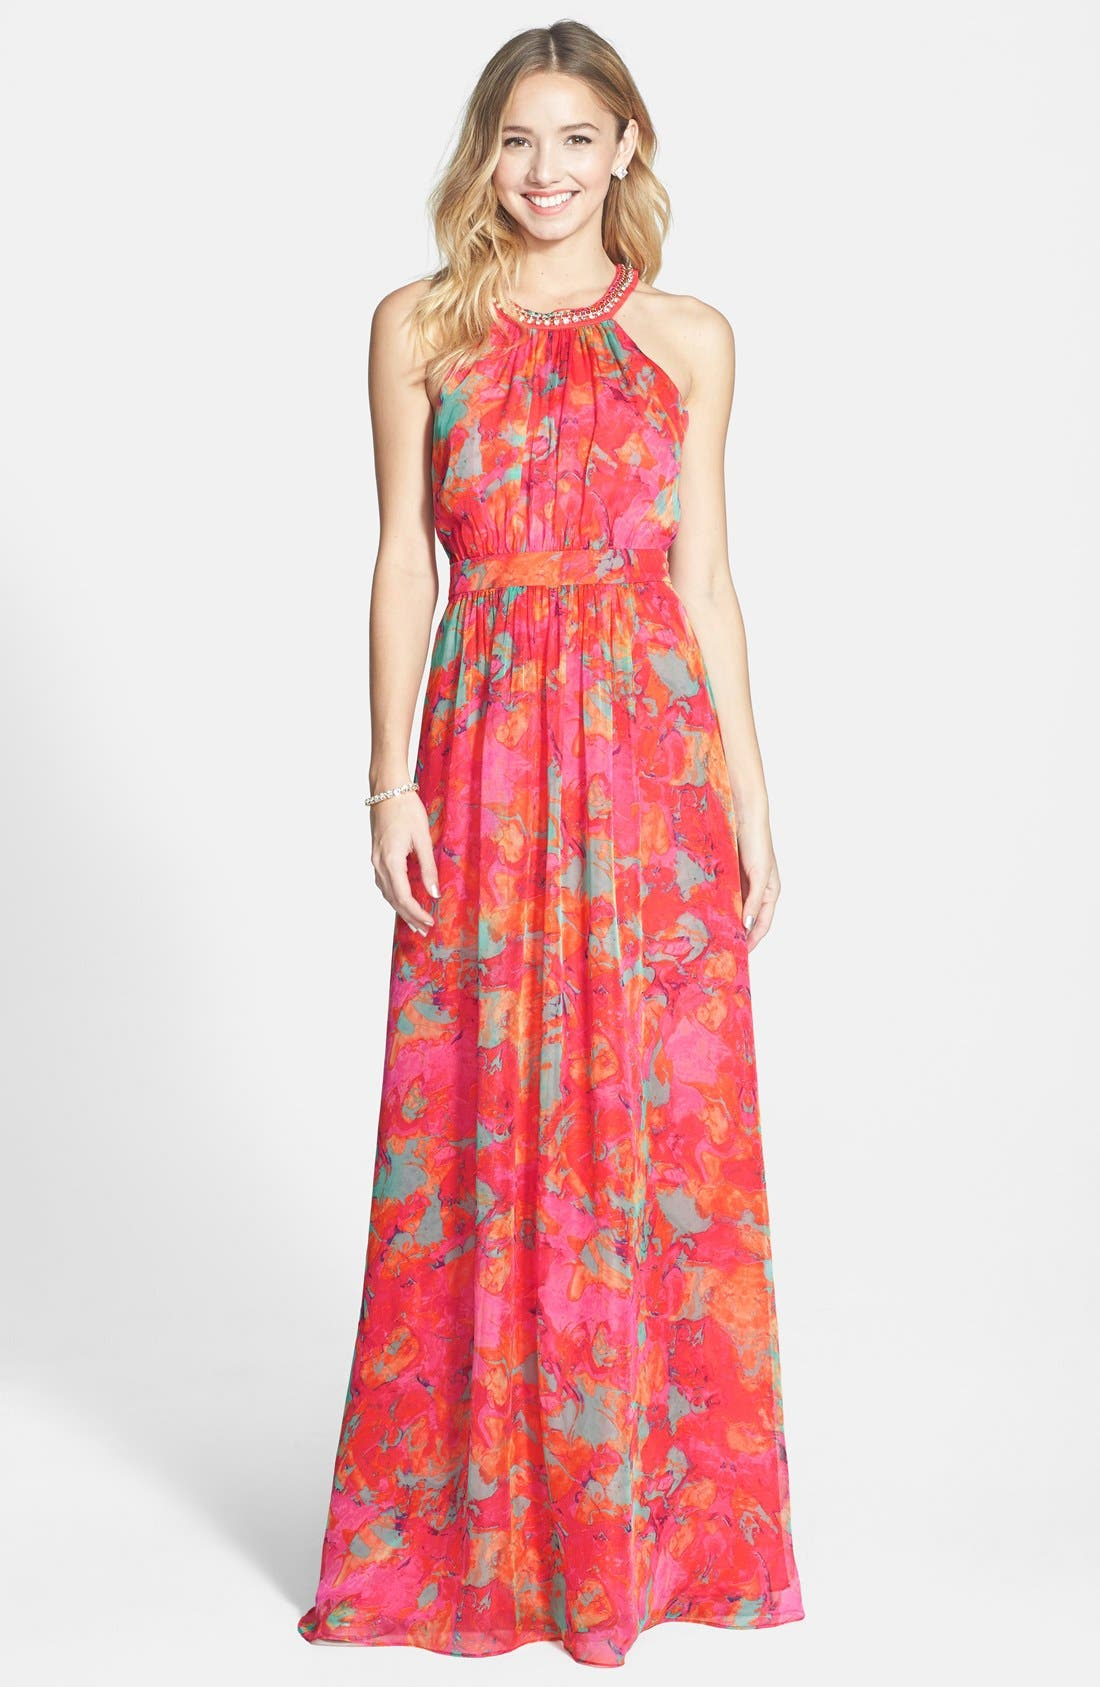 LAUNDRY BY SHELLI SEGAL,                             Embellished Print Chiffon Gown,                             Main thumbnail 1, color,                             600